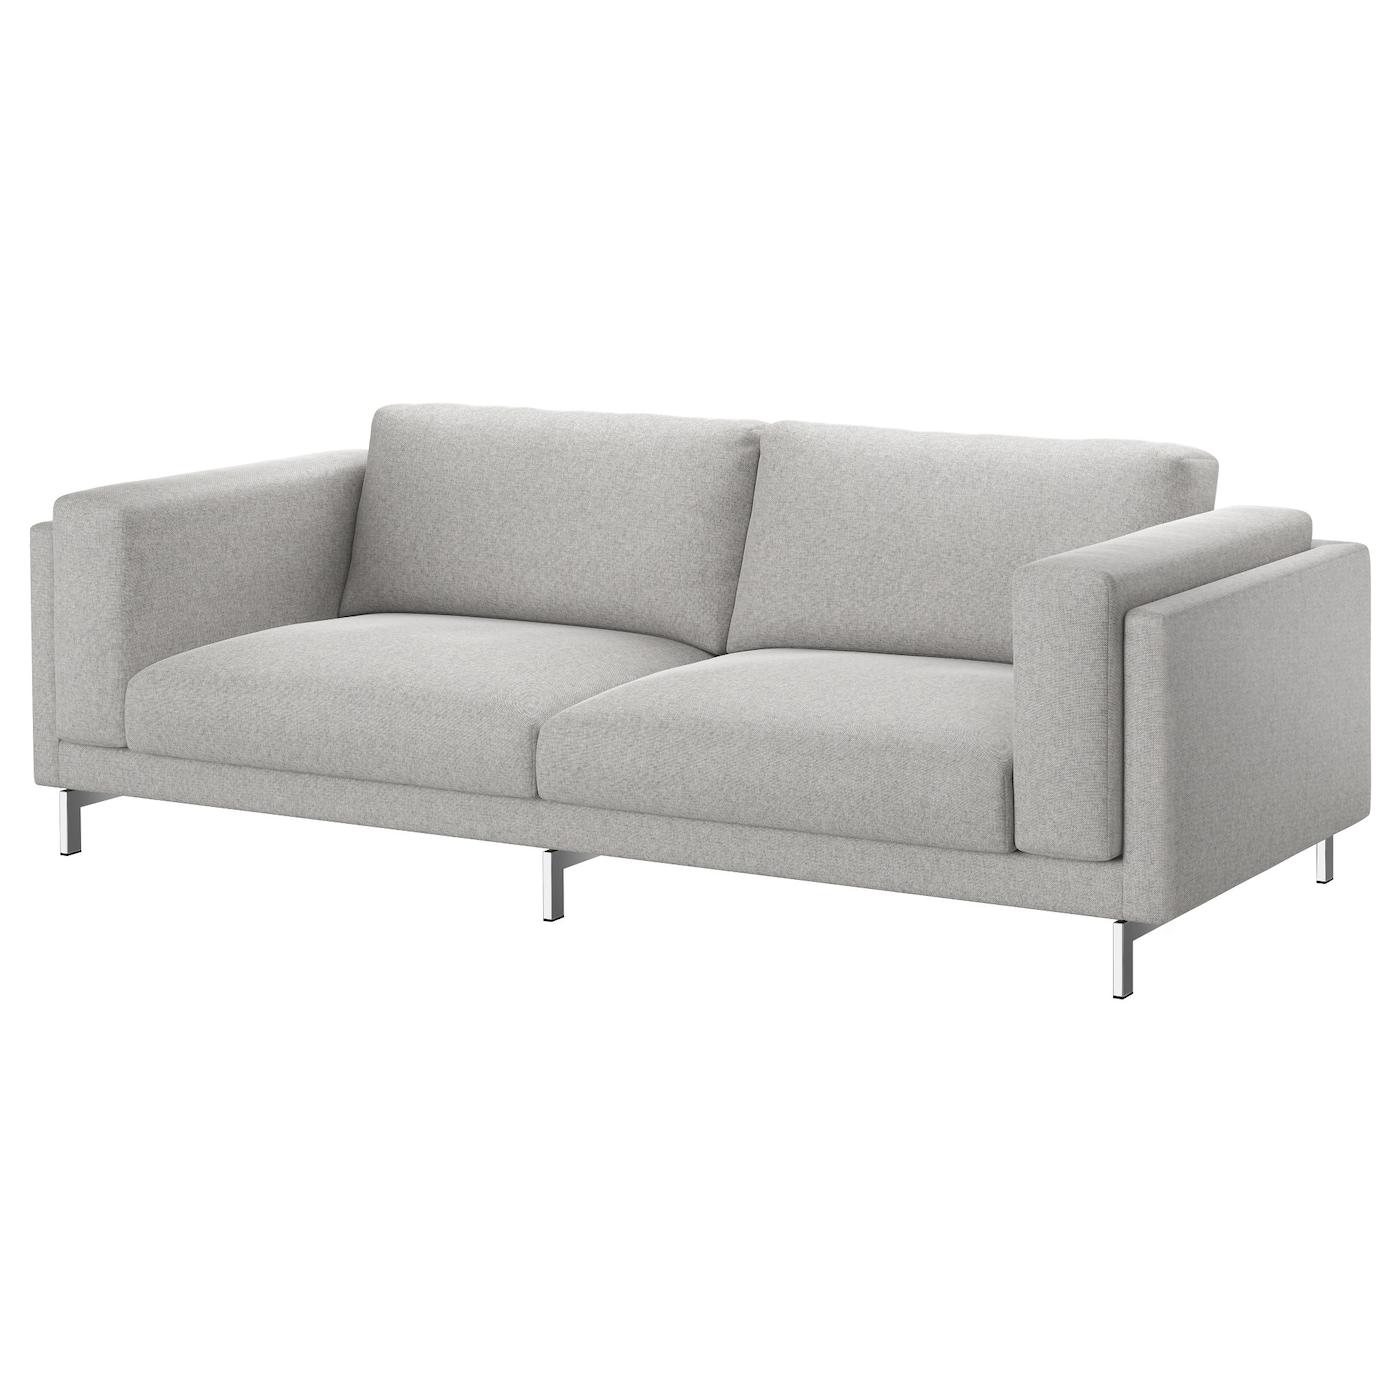 Nockeby Cover Three Seat Sofa